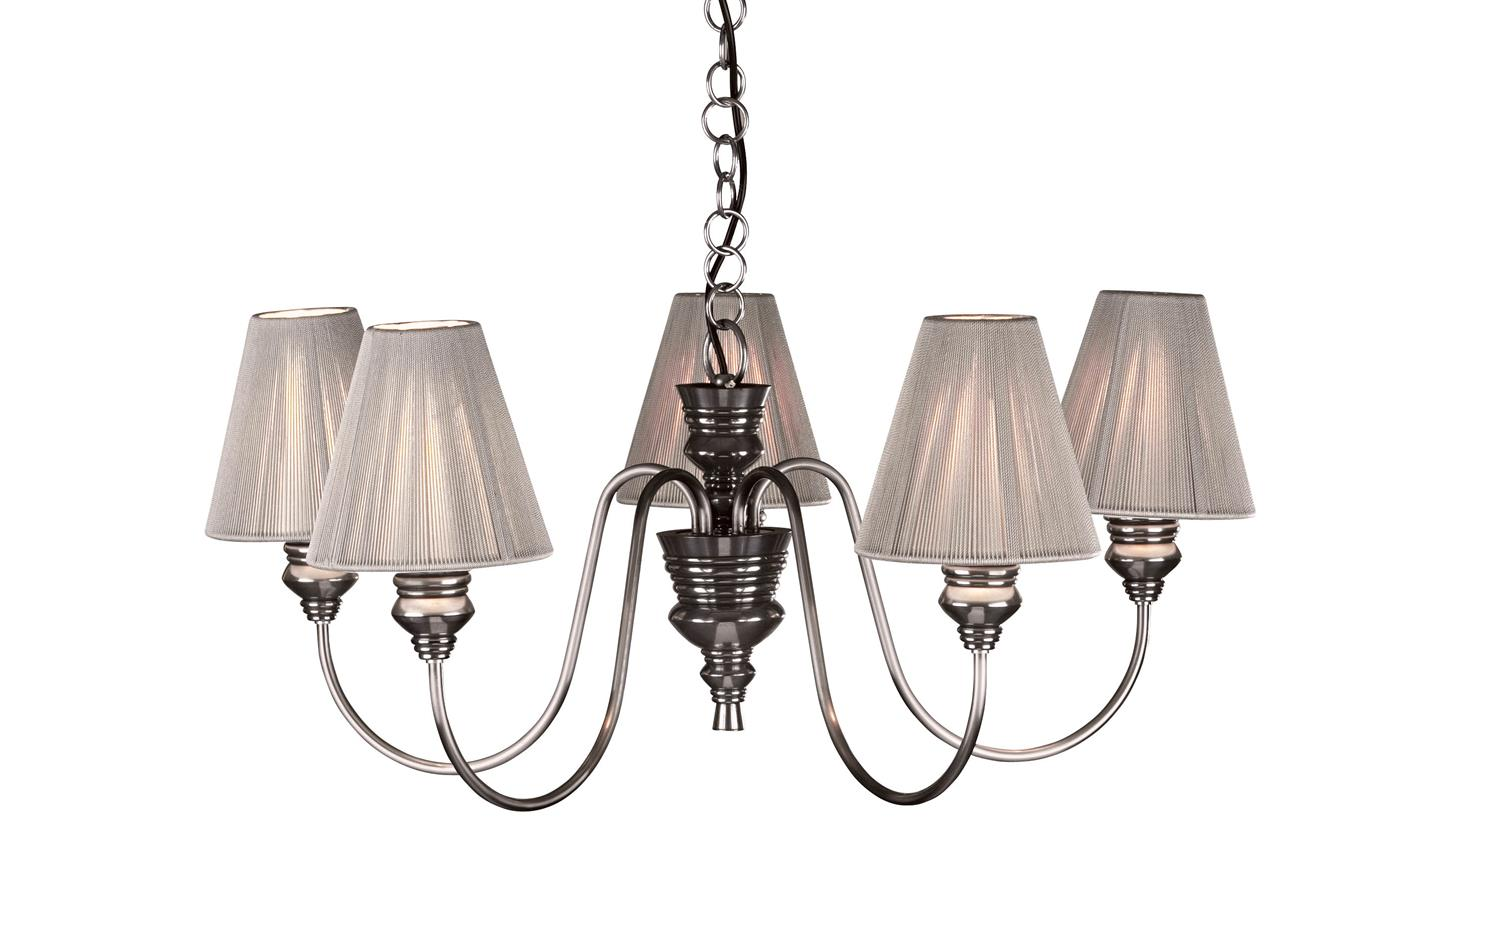 David Hunt Lighting DOR0567 Doreen 5 Light Pendant in Pewter with Silver Shades